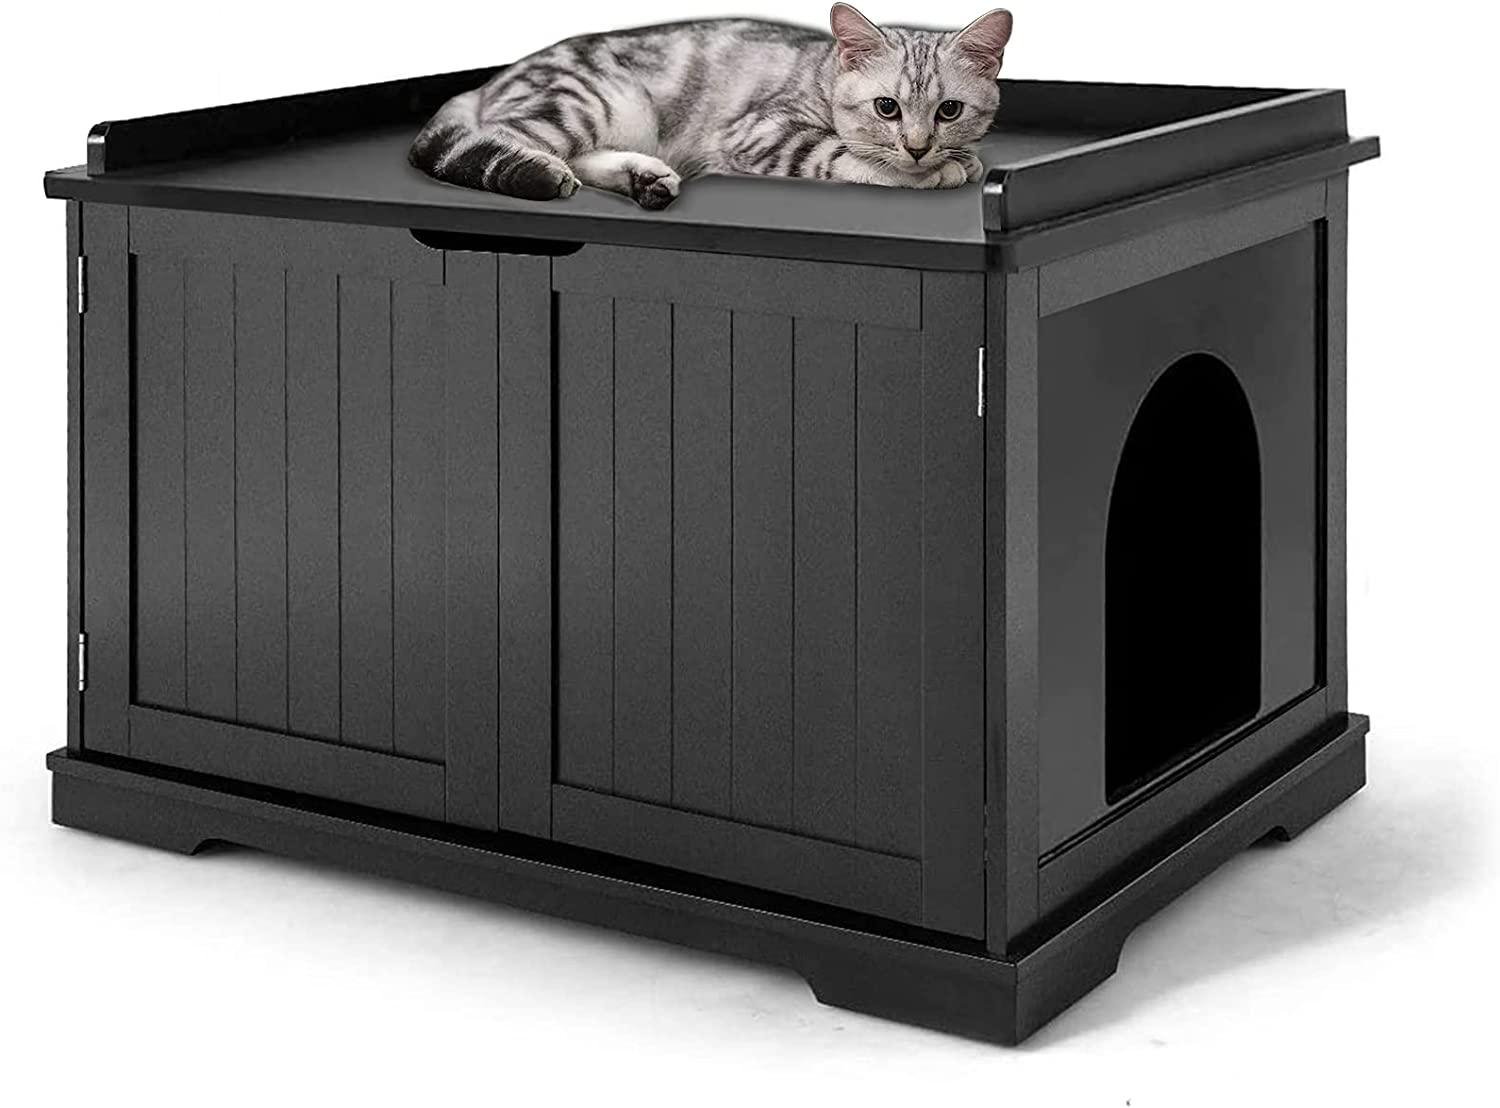 Wooden Cat Litter Box Enclosure, X-Large Cat Washroom Storage Bench with Top Apron and Removable Partition, Modern Litter Box Furniture Fits for Most Litter Box